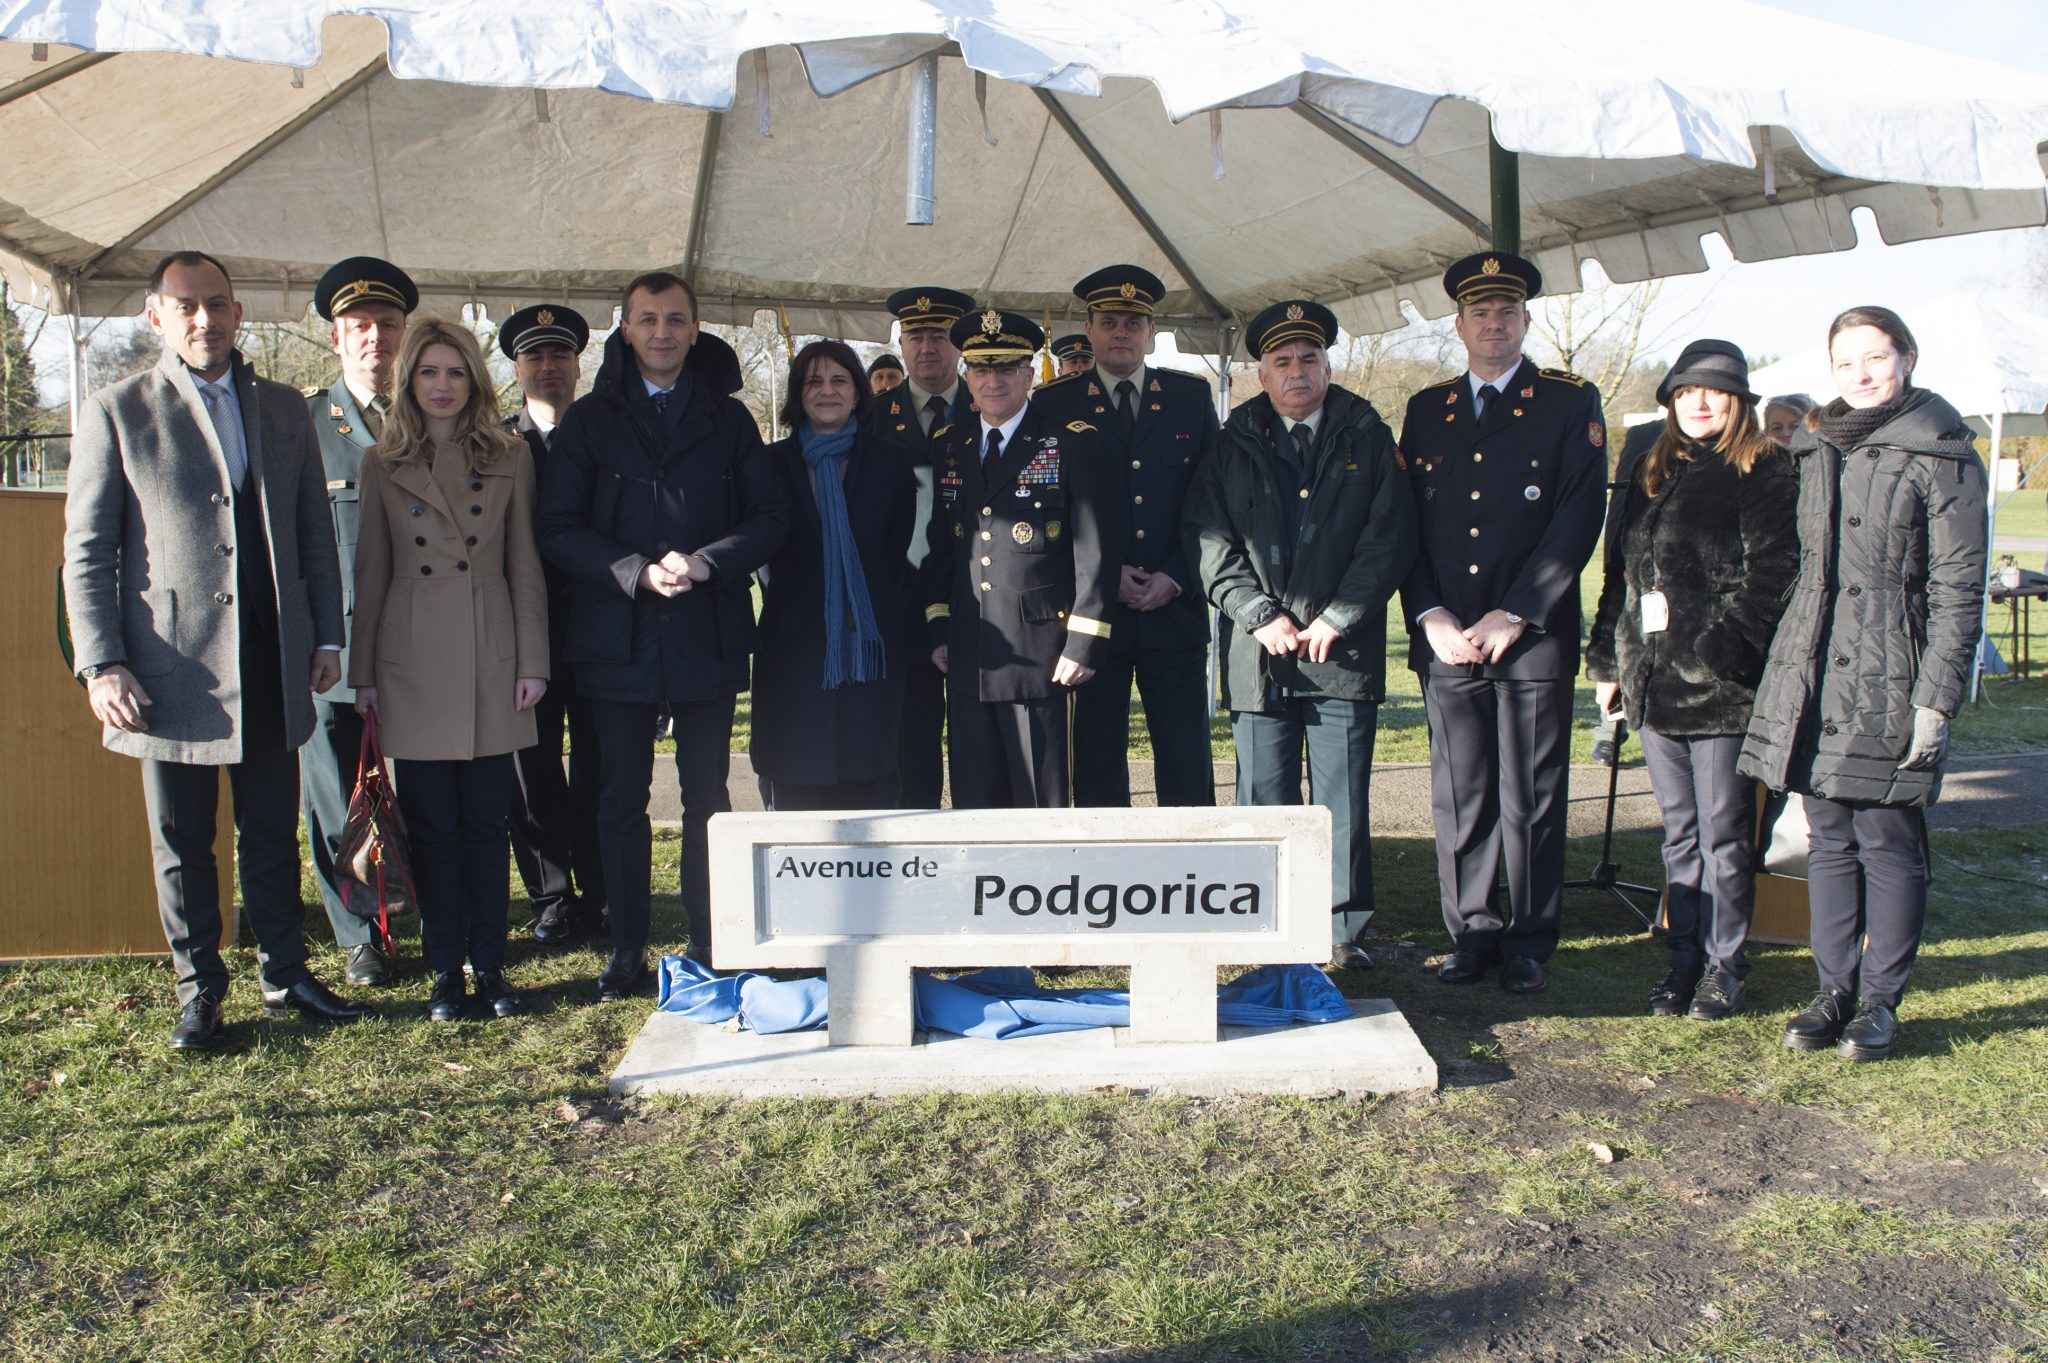 Podgorica got a street in NATO headquarters in Mons